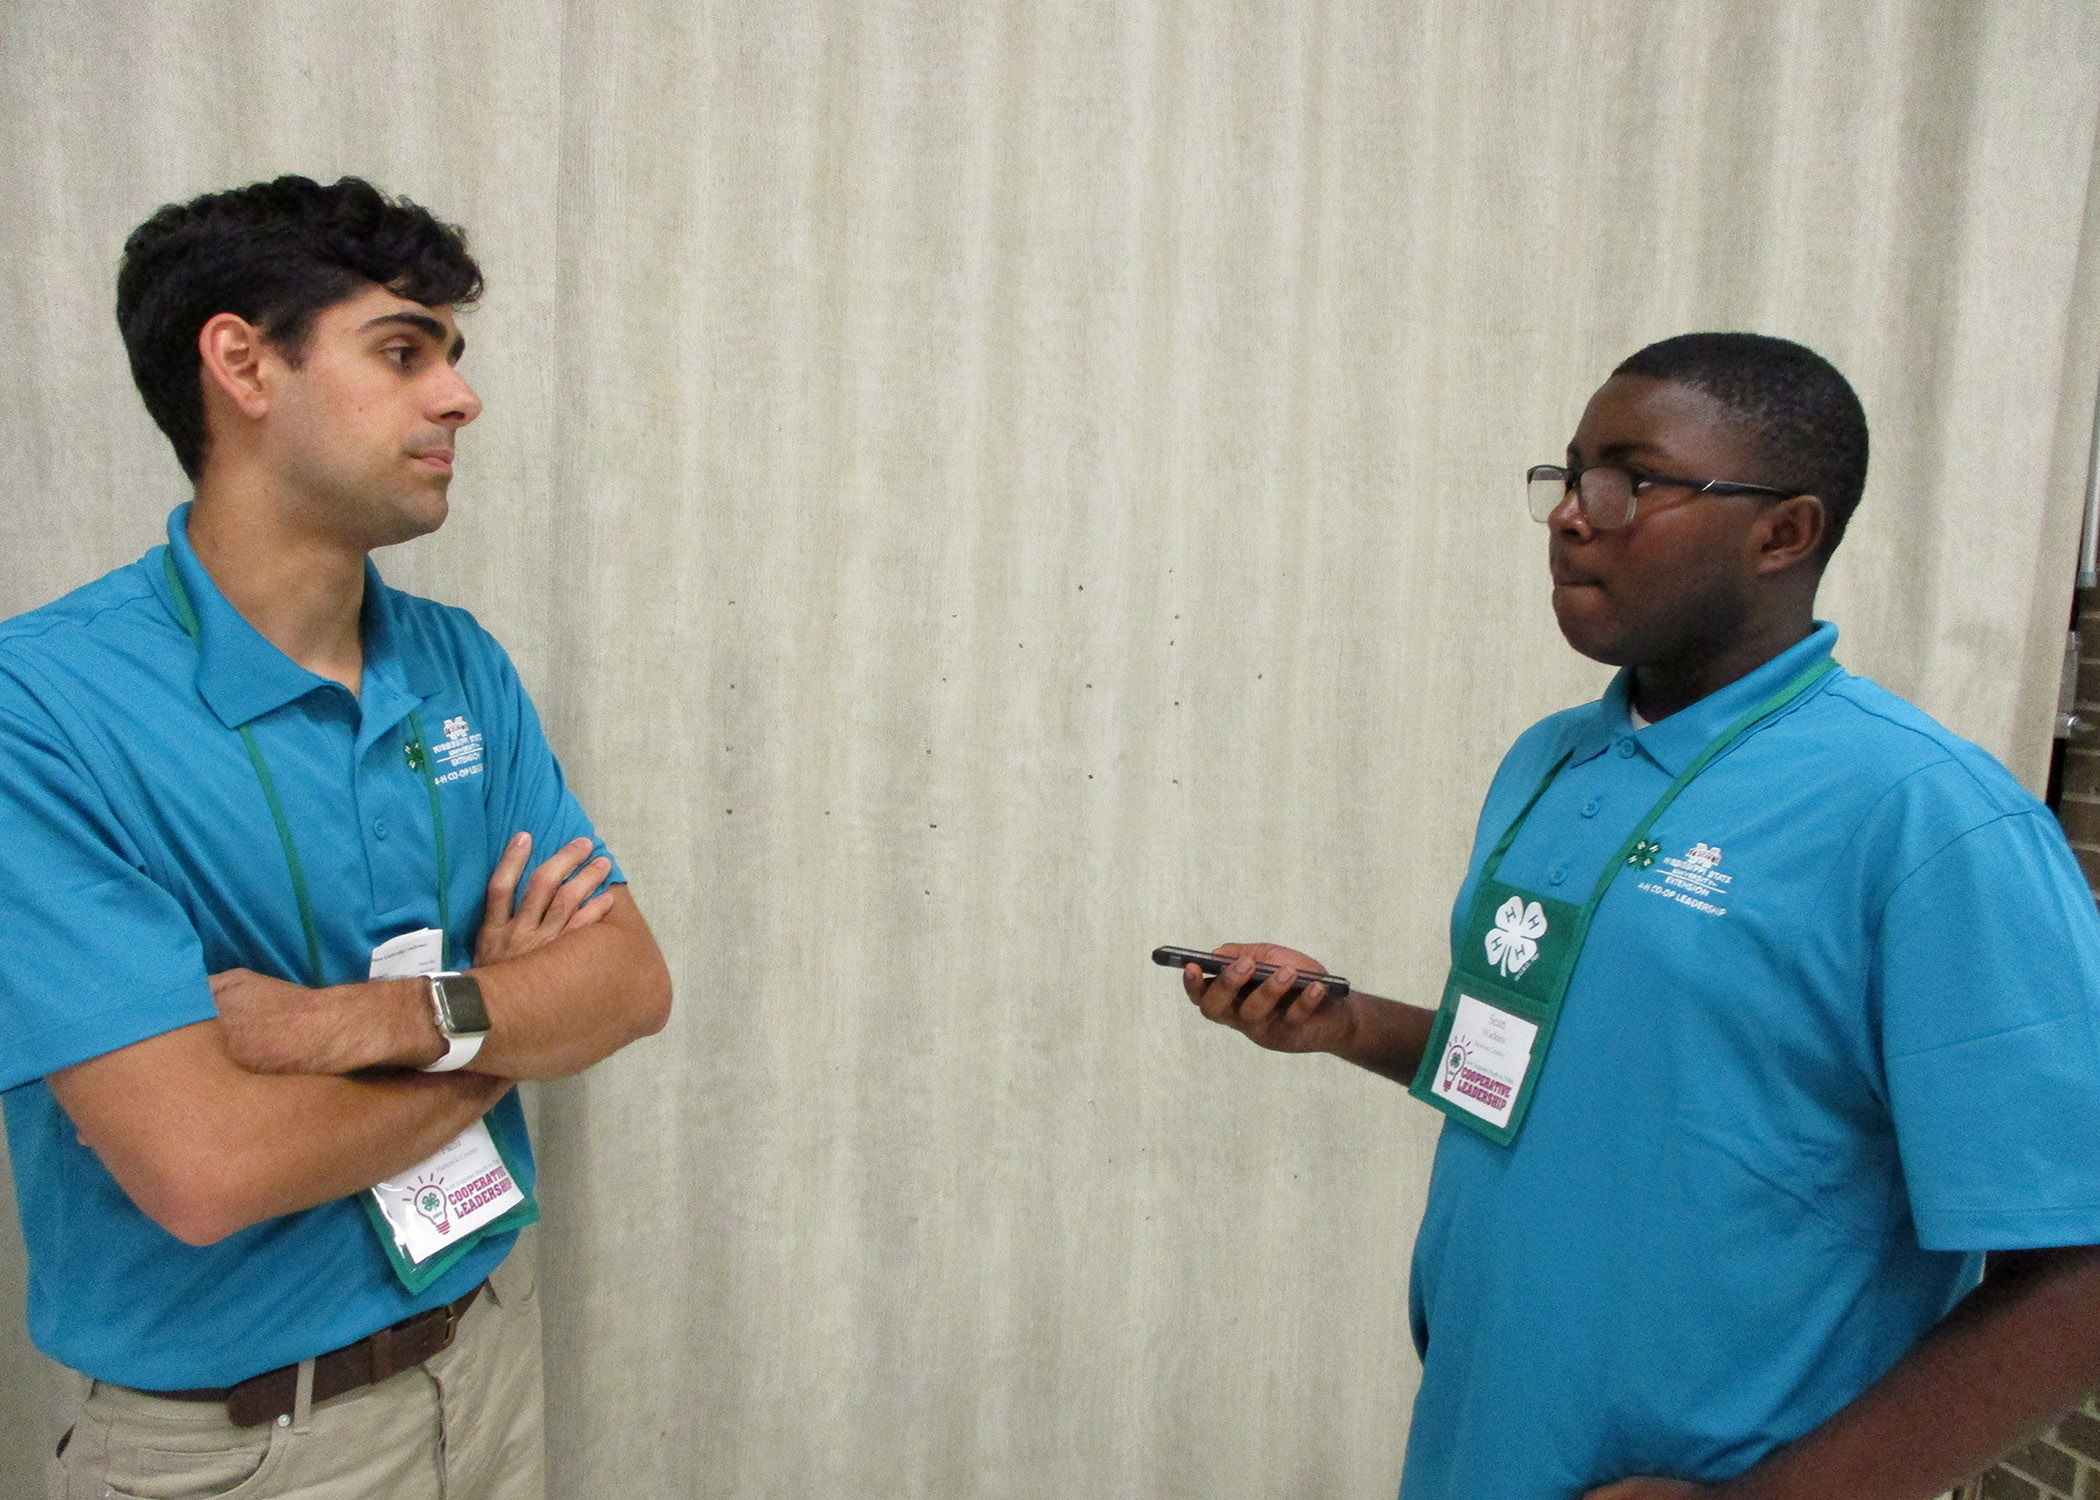 Two young men wearing blue shirts talking to each other